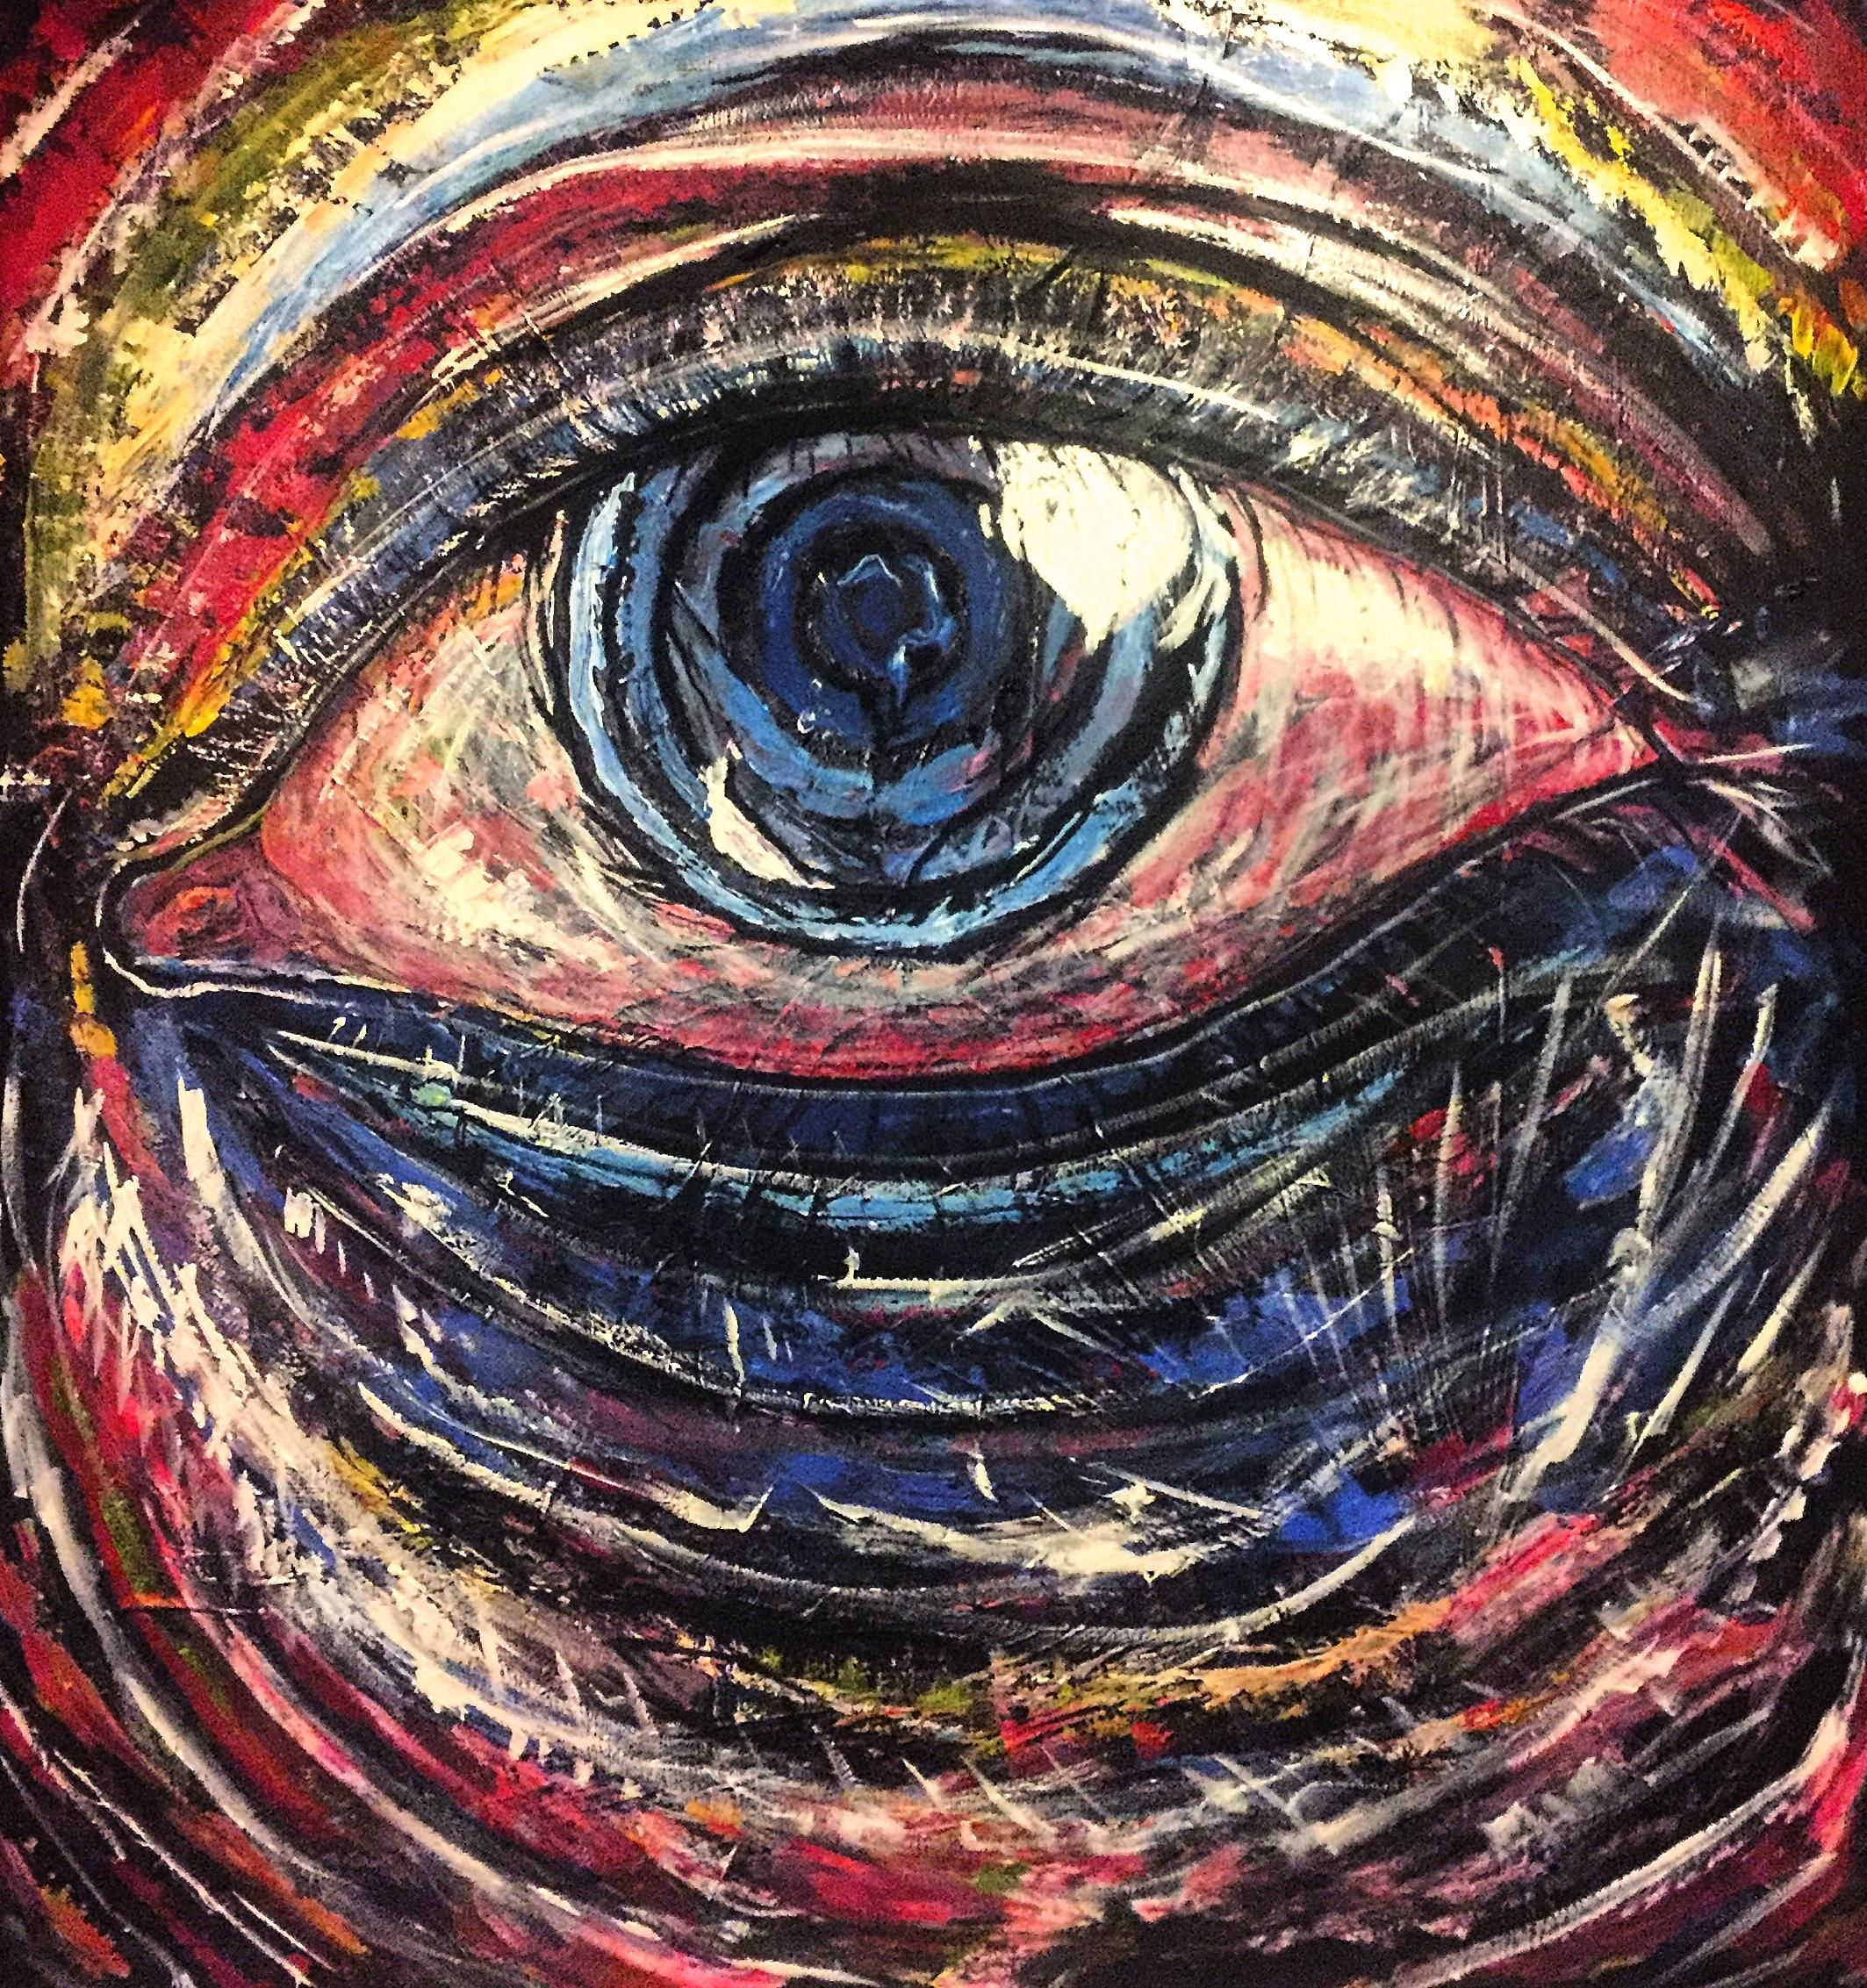 EYE - Acylic painting 4x3.8 Footer my largest canvas piece to date!